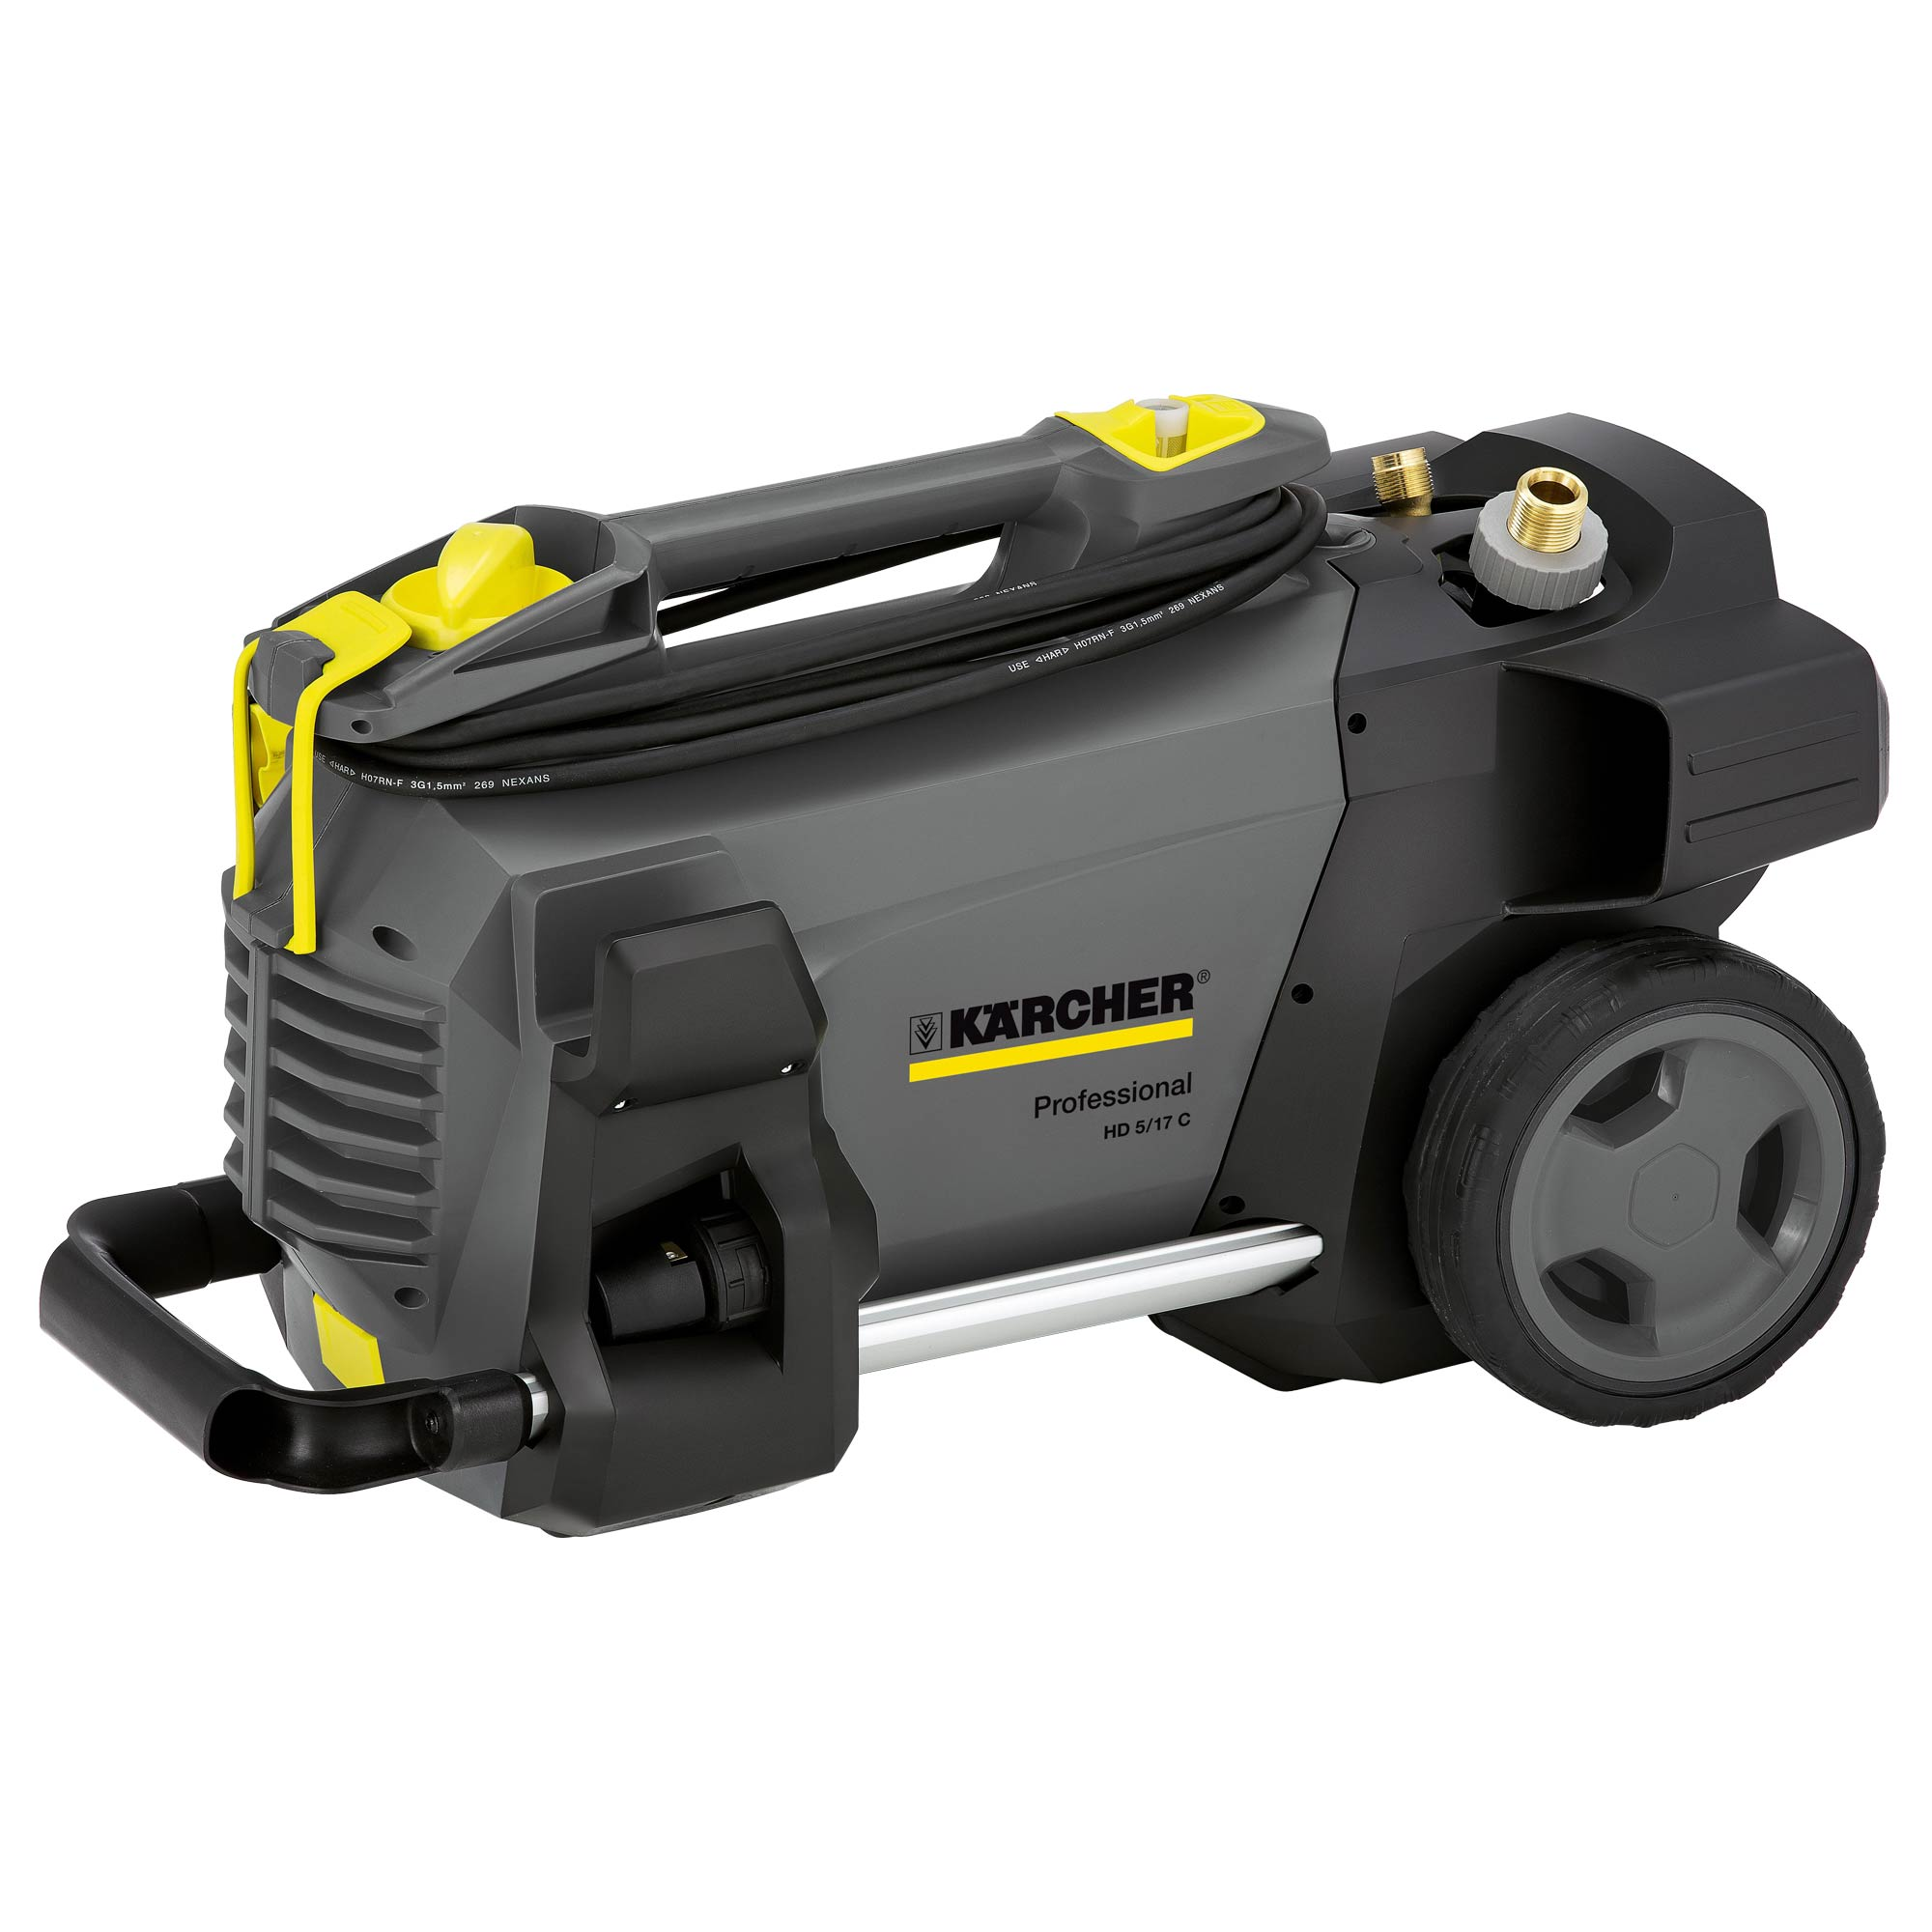 karcher hd 5 12c karcher professional pressure washer. Black Bedroom Furniture Sets. Home Design Ideas